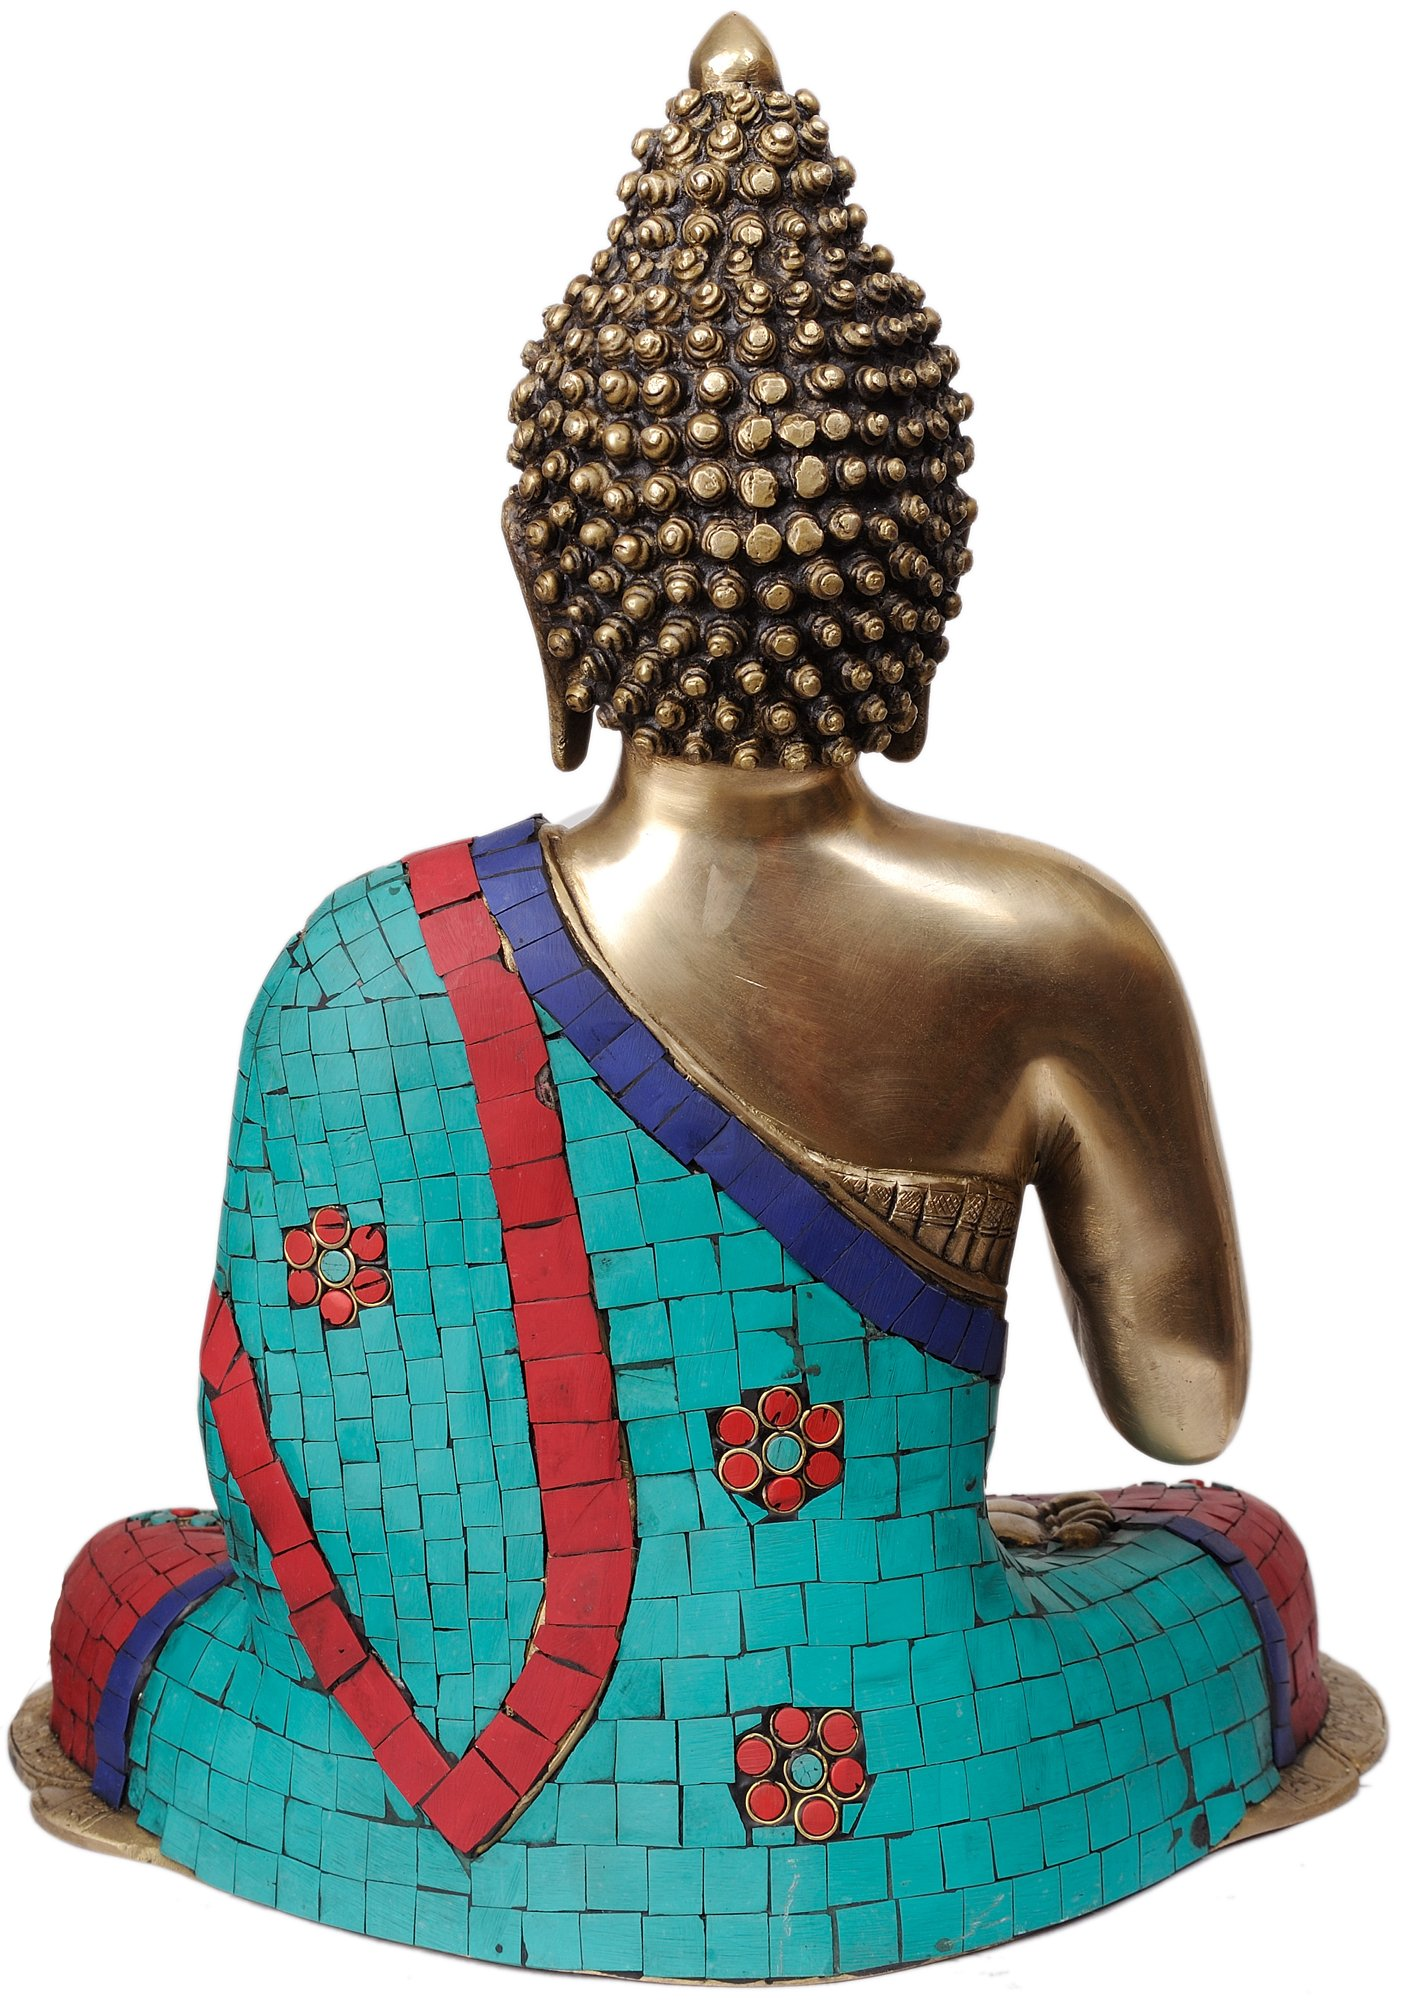 Preaching Buddha (with Fine Inlay Work) - Brass Statue by Exotic India (Image #2)